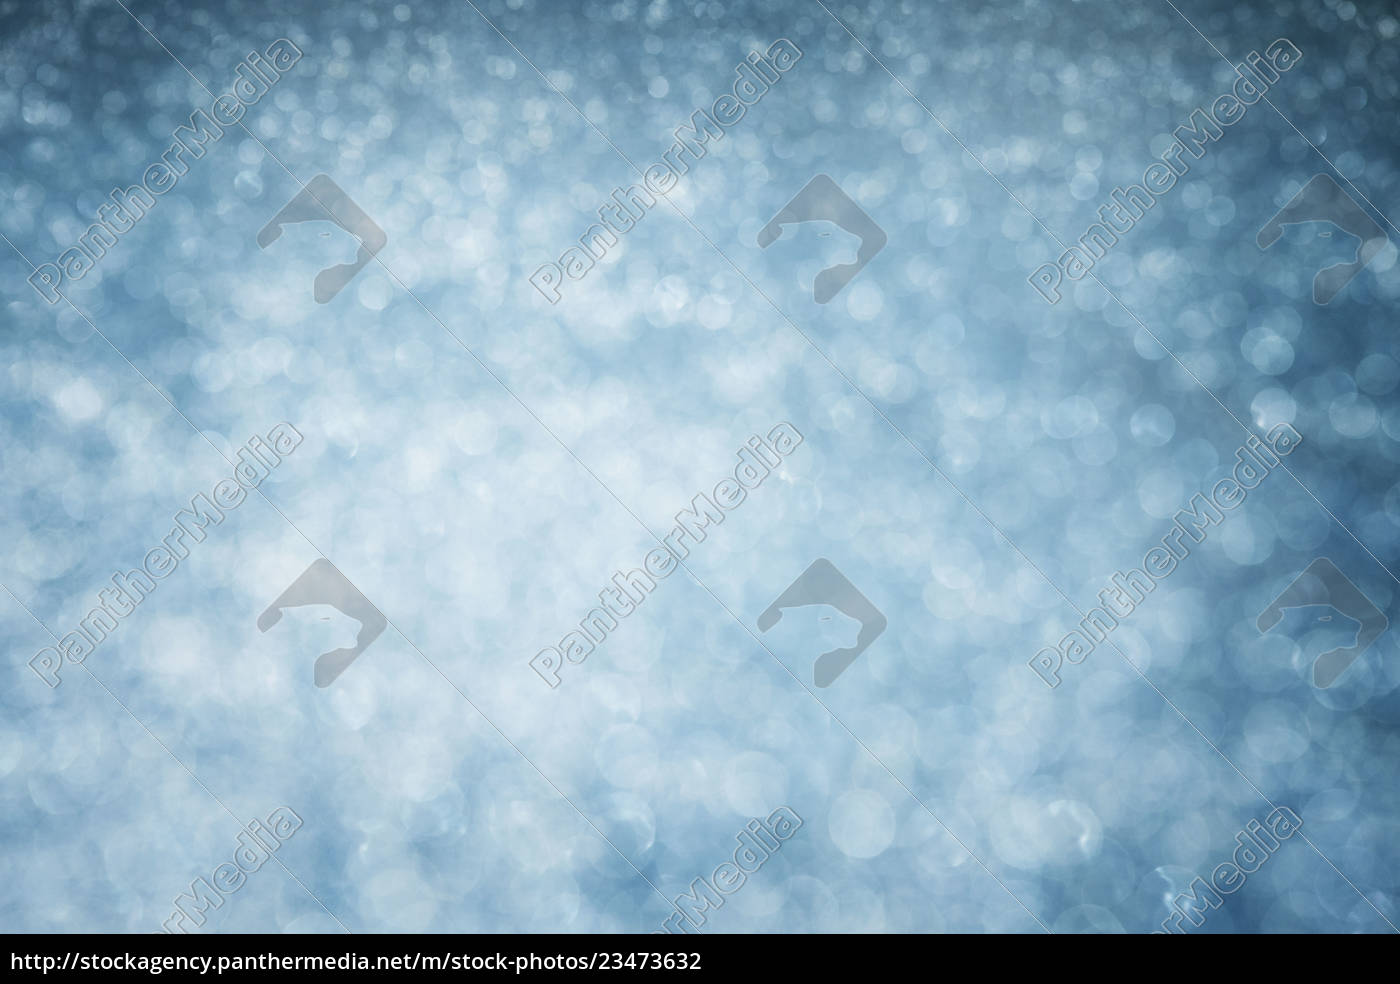 abstract, blue, bokeh, background - 23473632